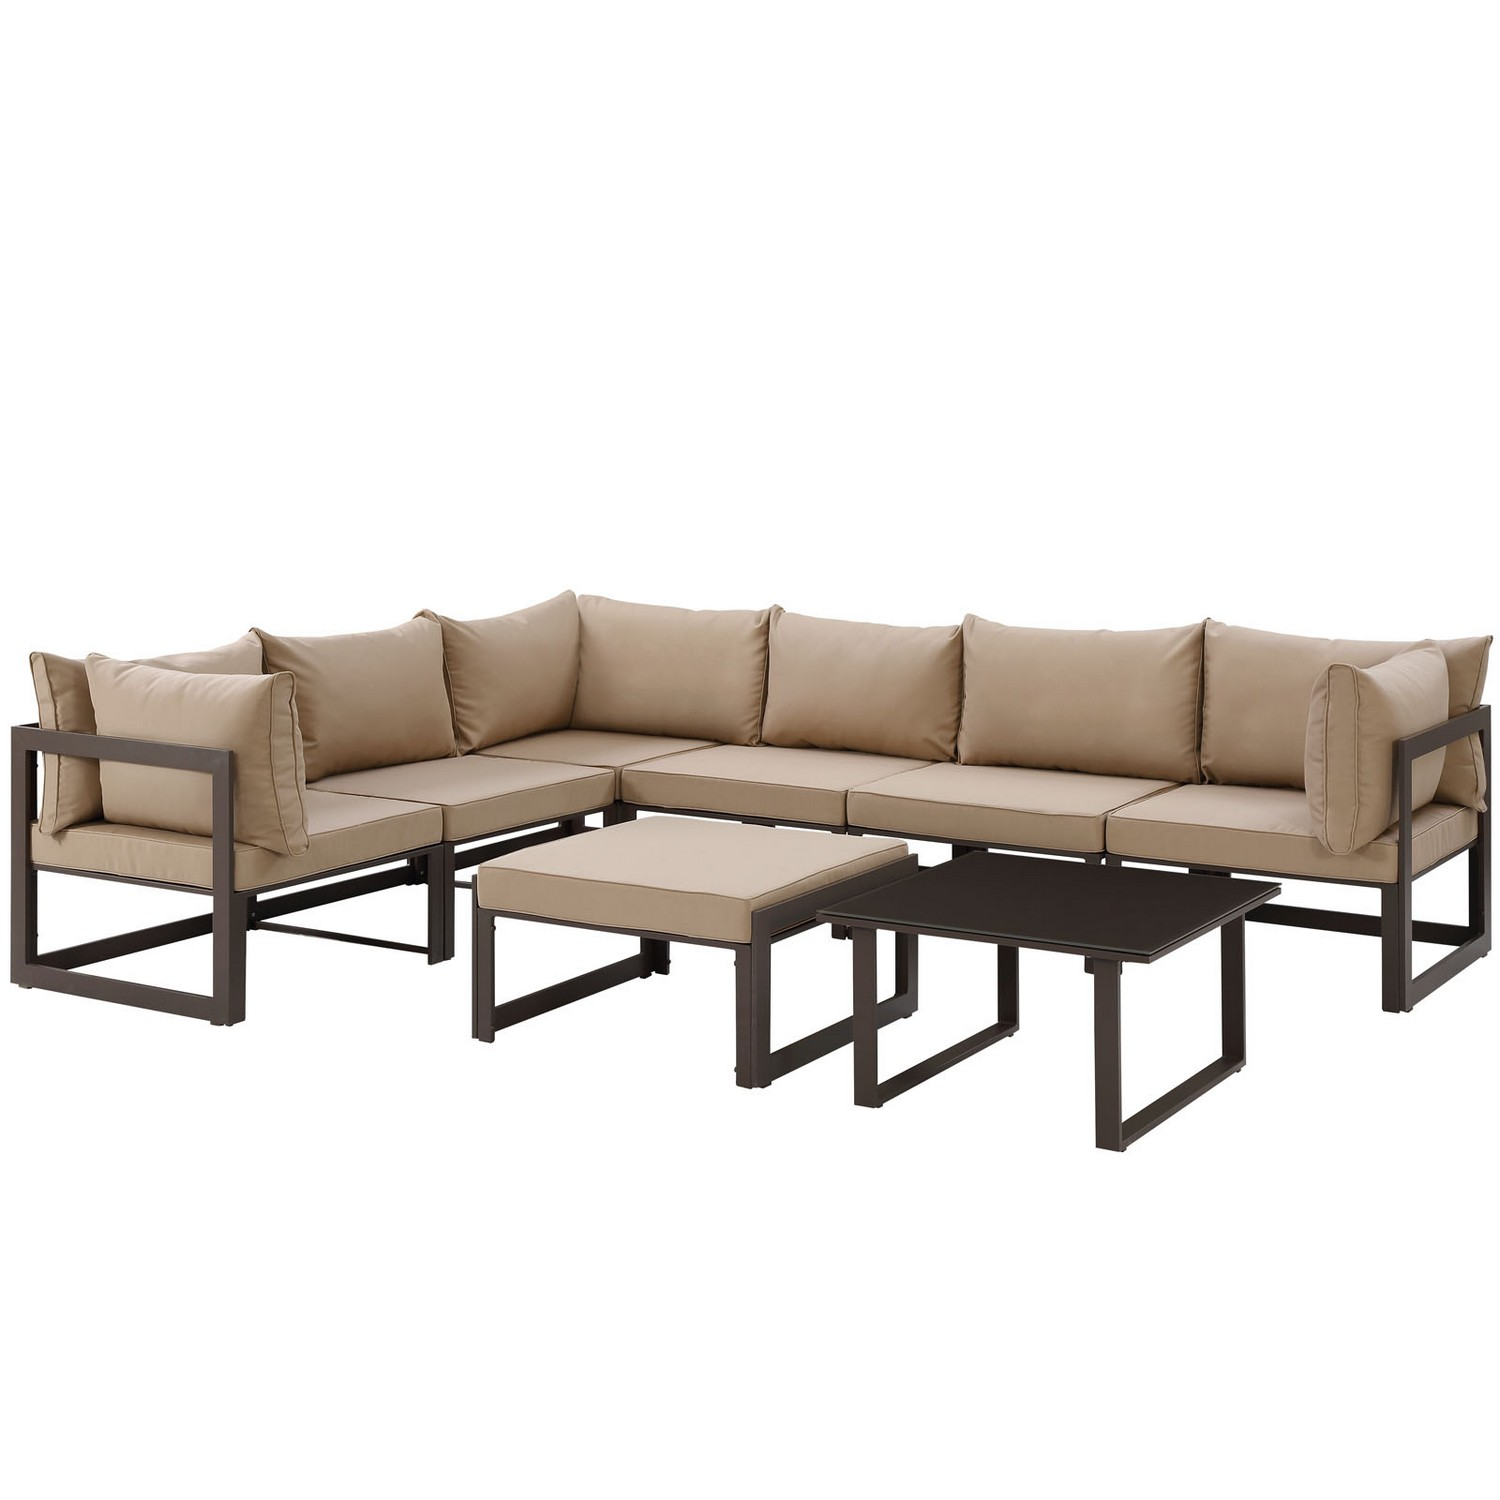 Modway Fortuna 8 Piece Outdoor Patio Sectional Sofa Set - Brown/Mocha